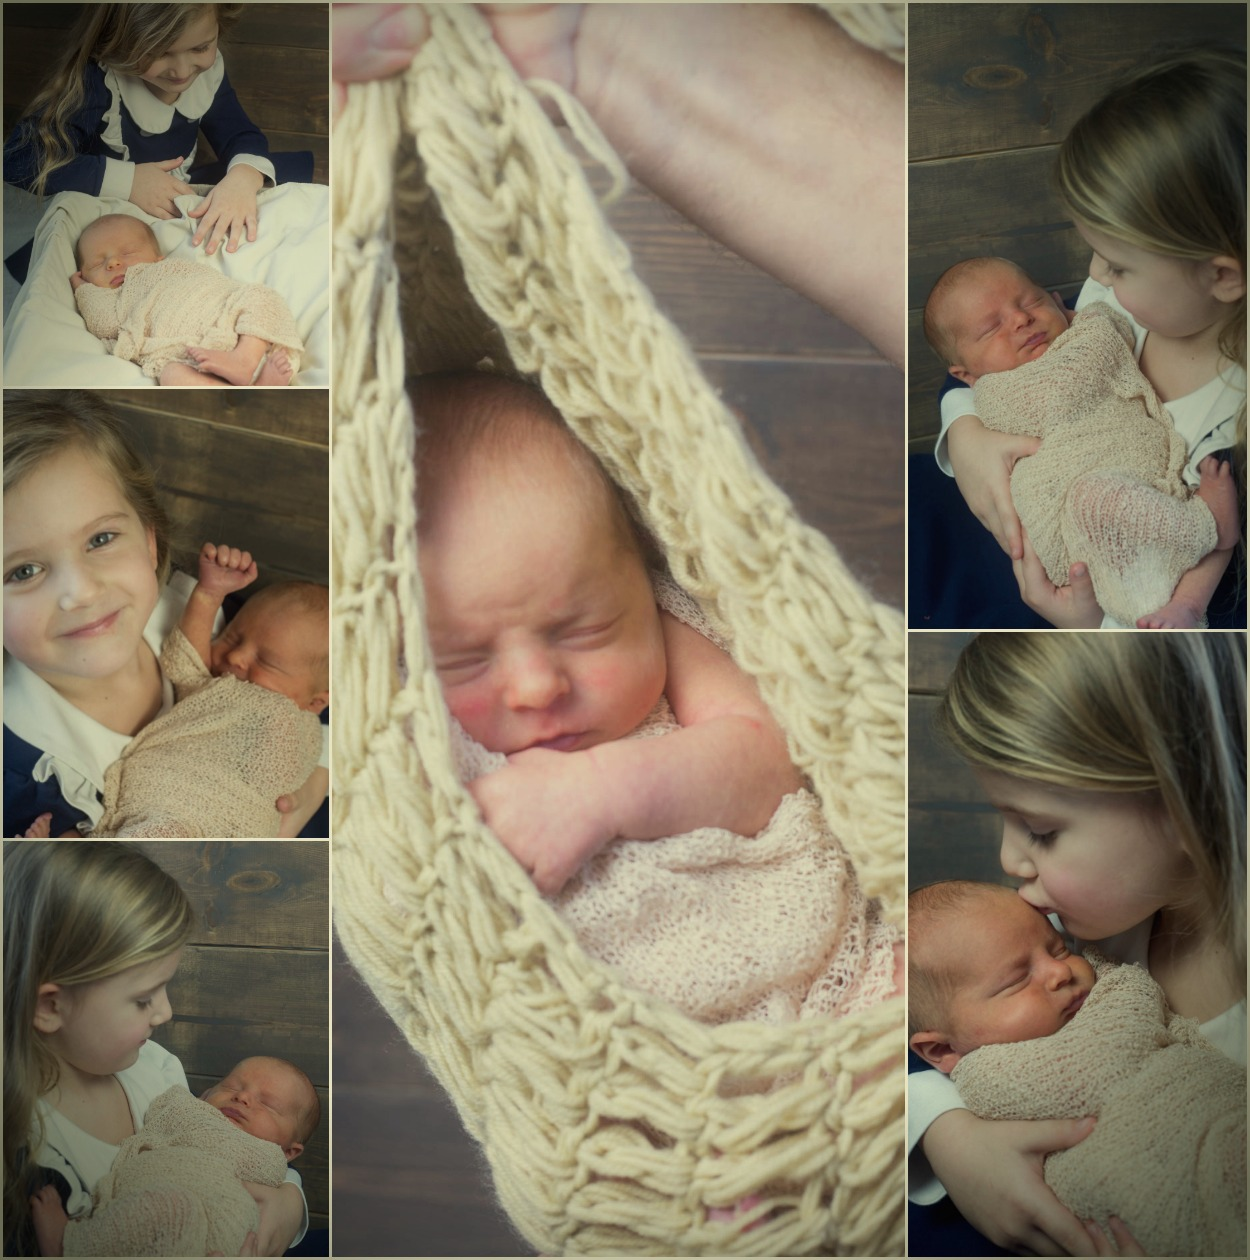 A collage of baby photos with a sibling.